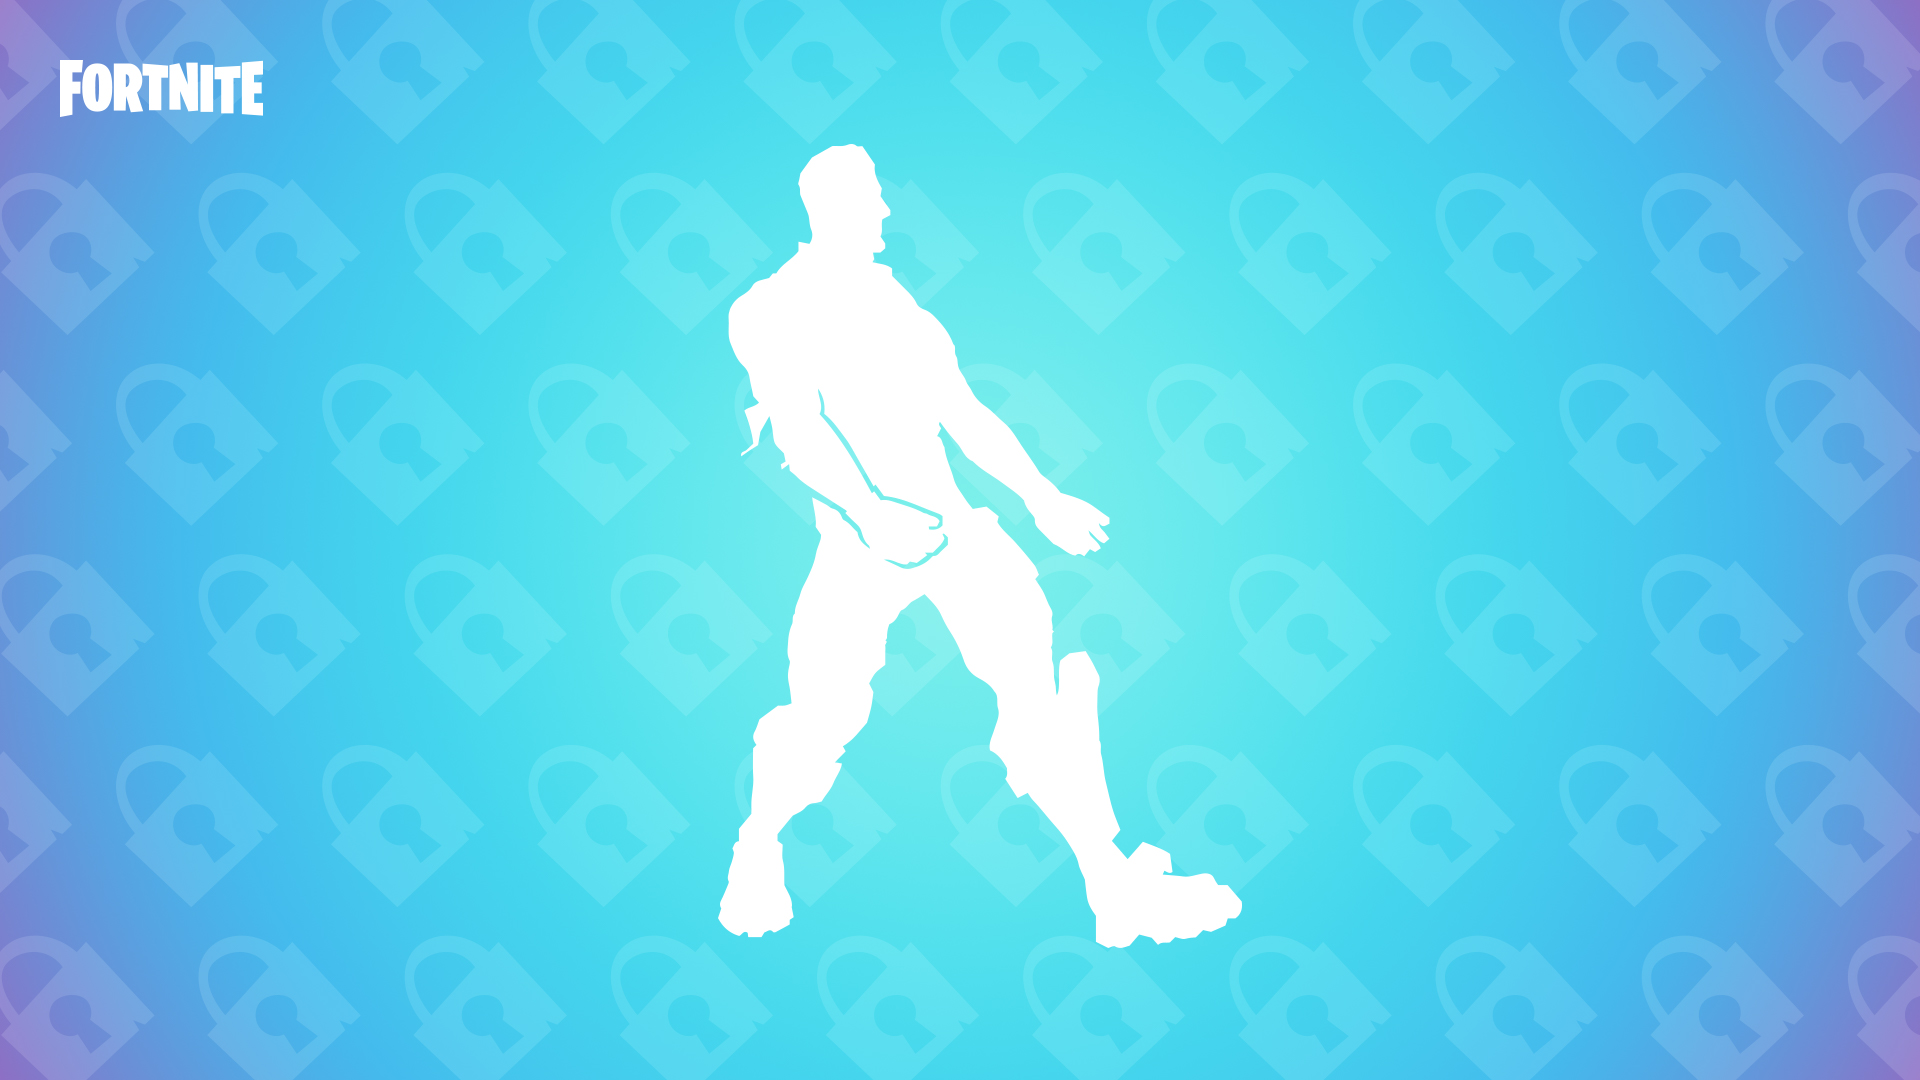 Fortnite Dances That Start With A Wanna See Me Emote Is The Latest Dance Announced For Fortnite